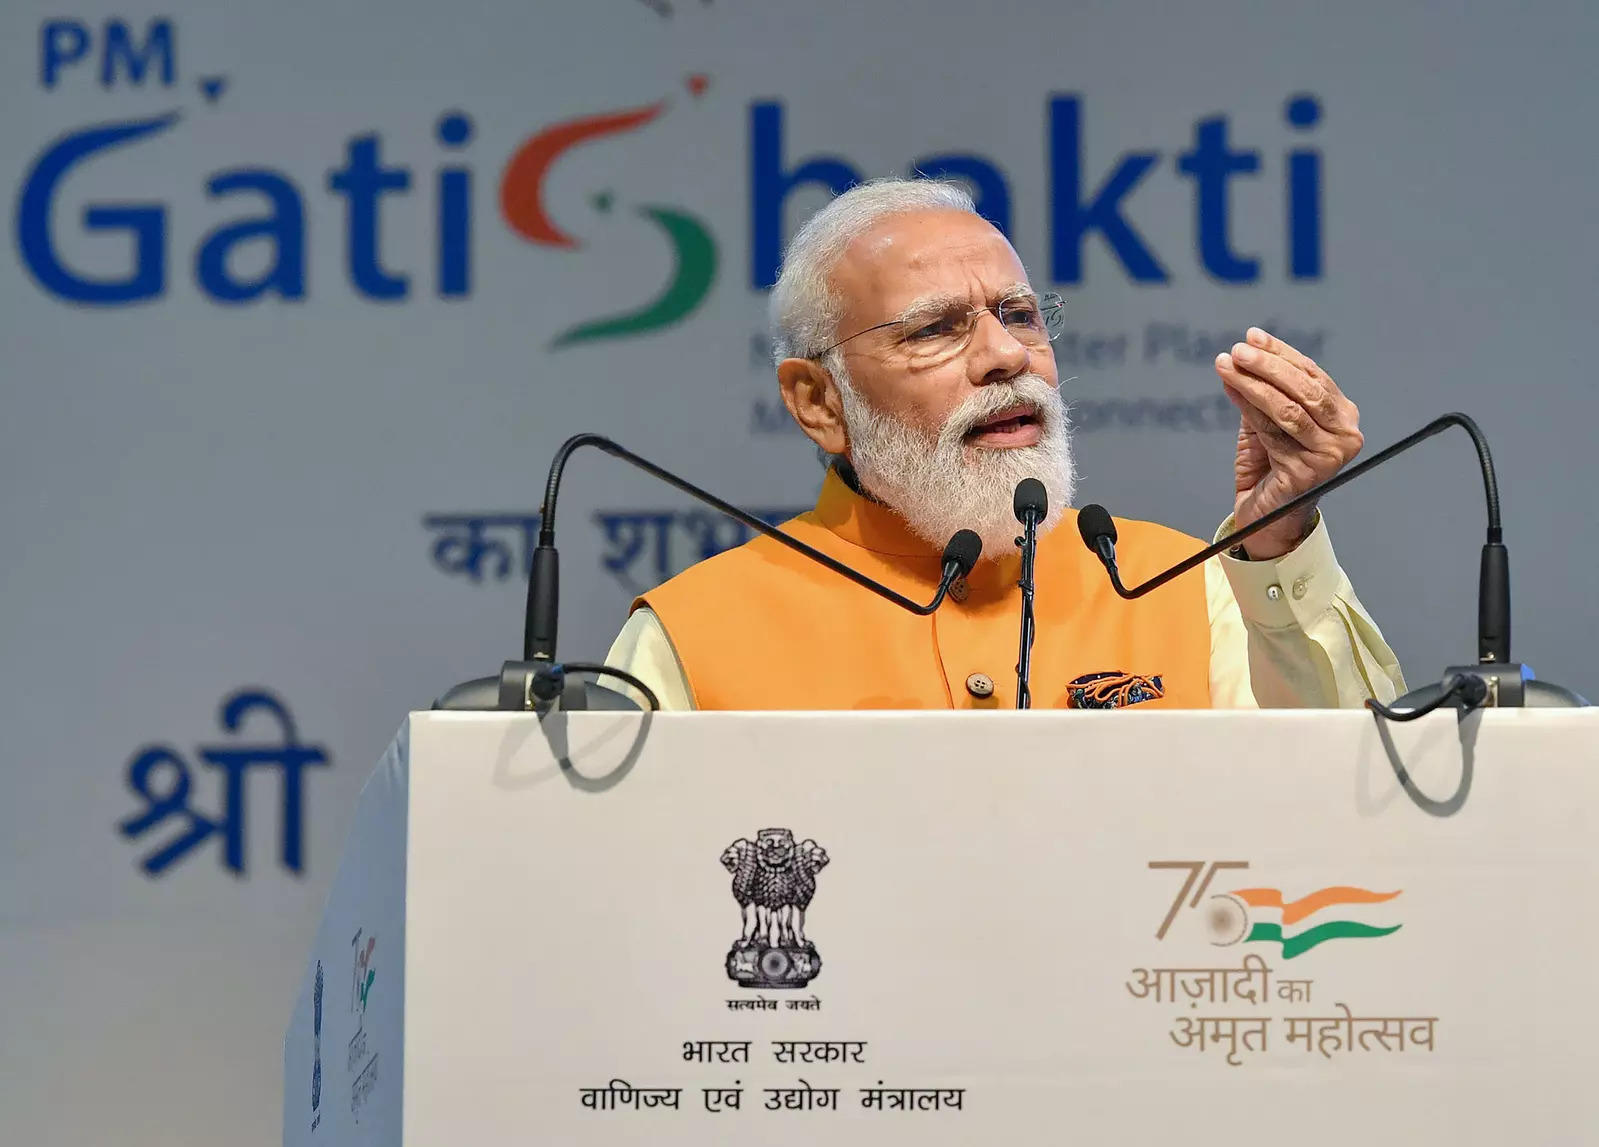 More than 200 new airports, heliports and waterdromes to be ready in next 5 years: PM